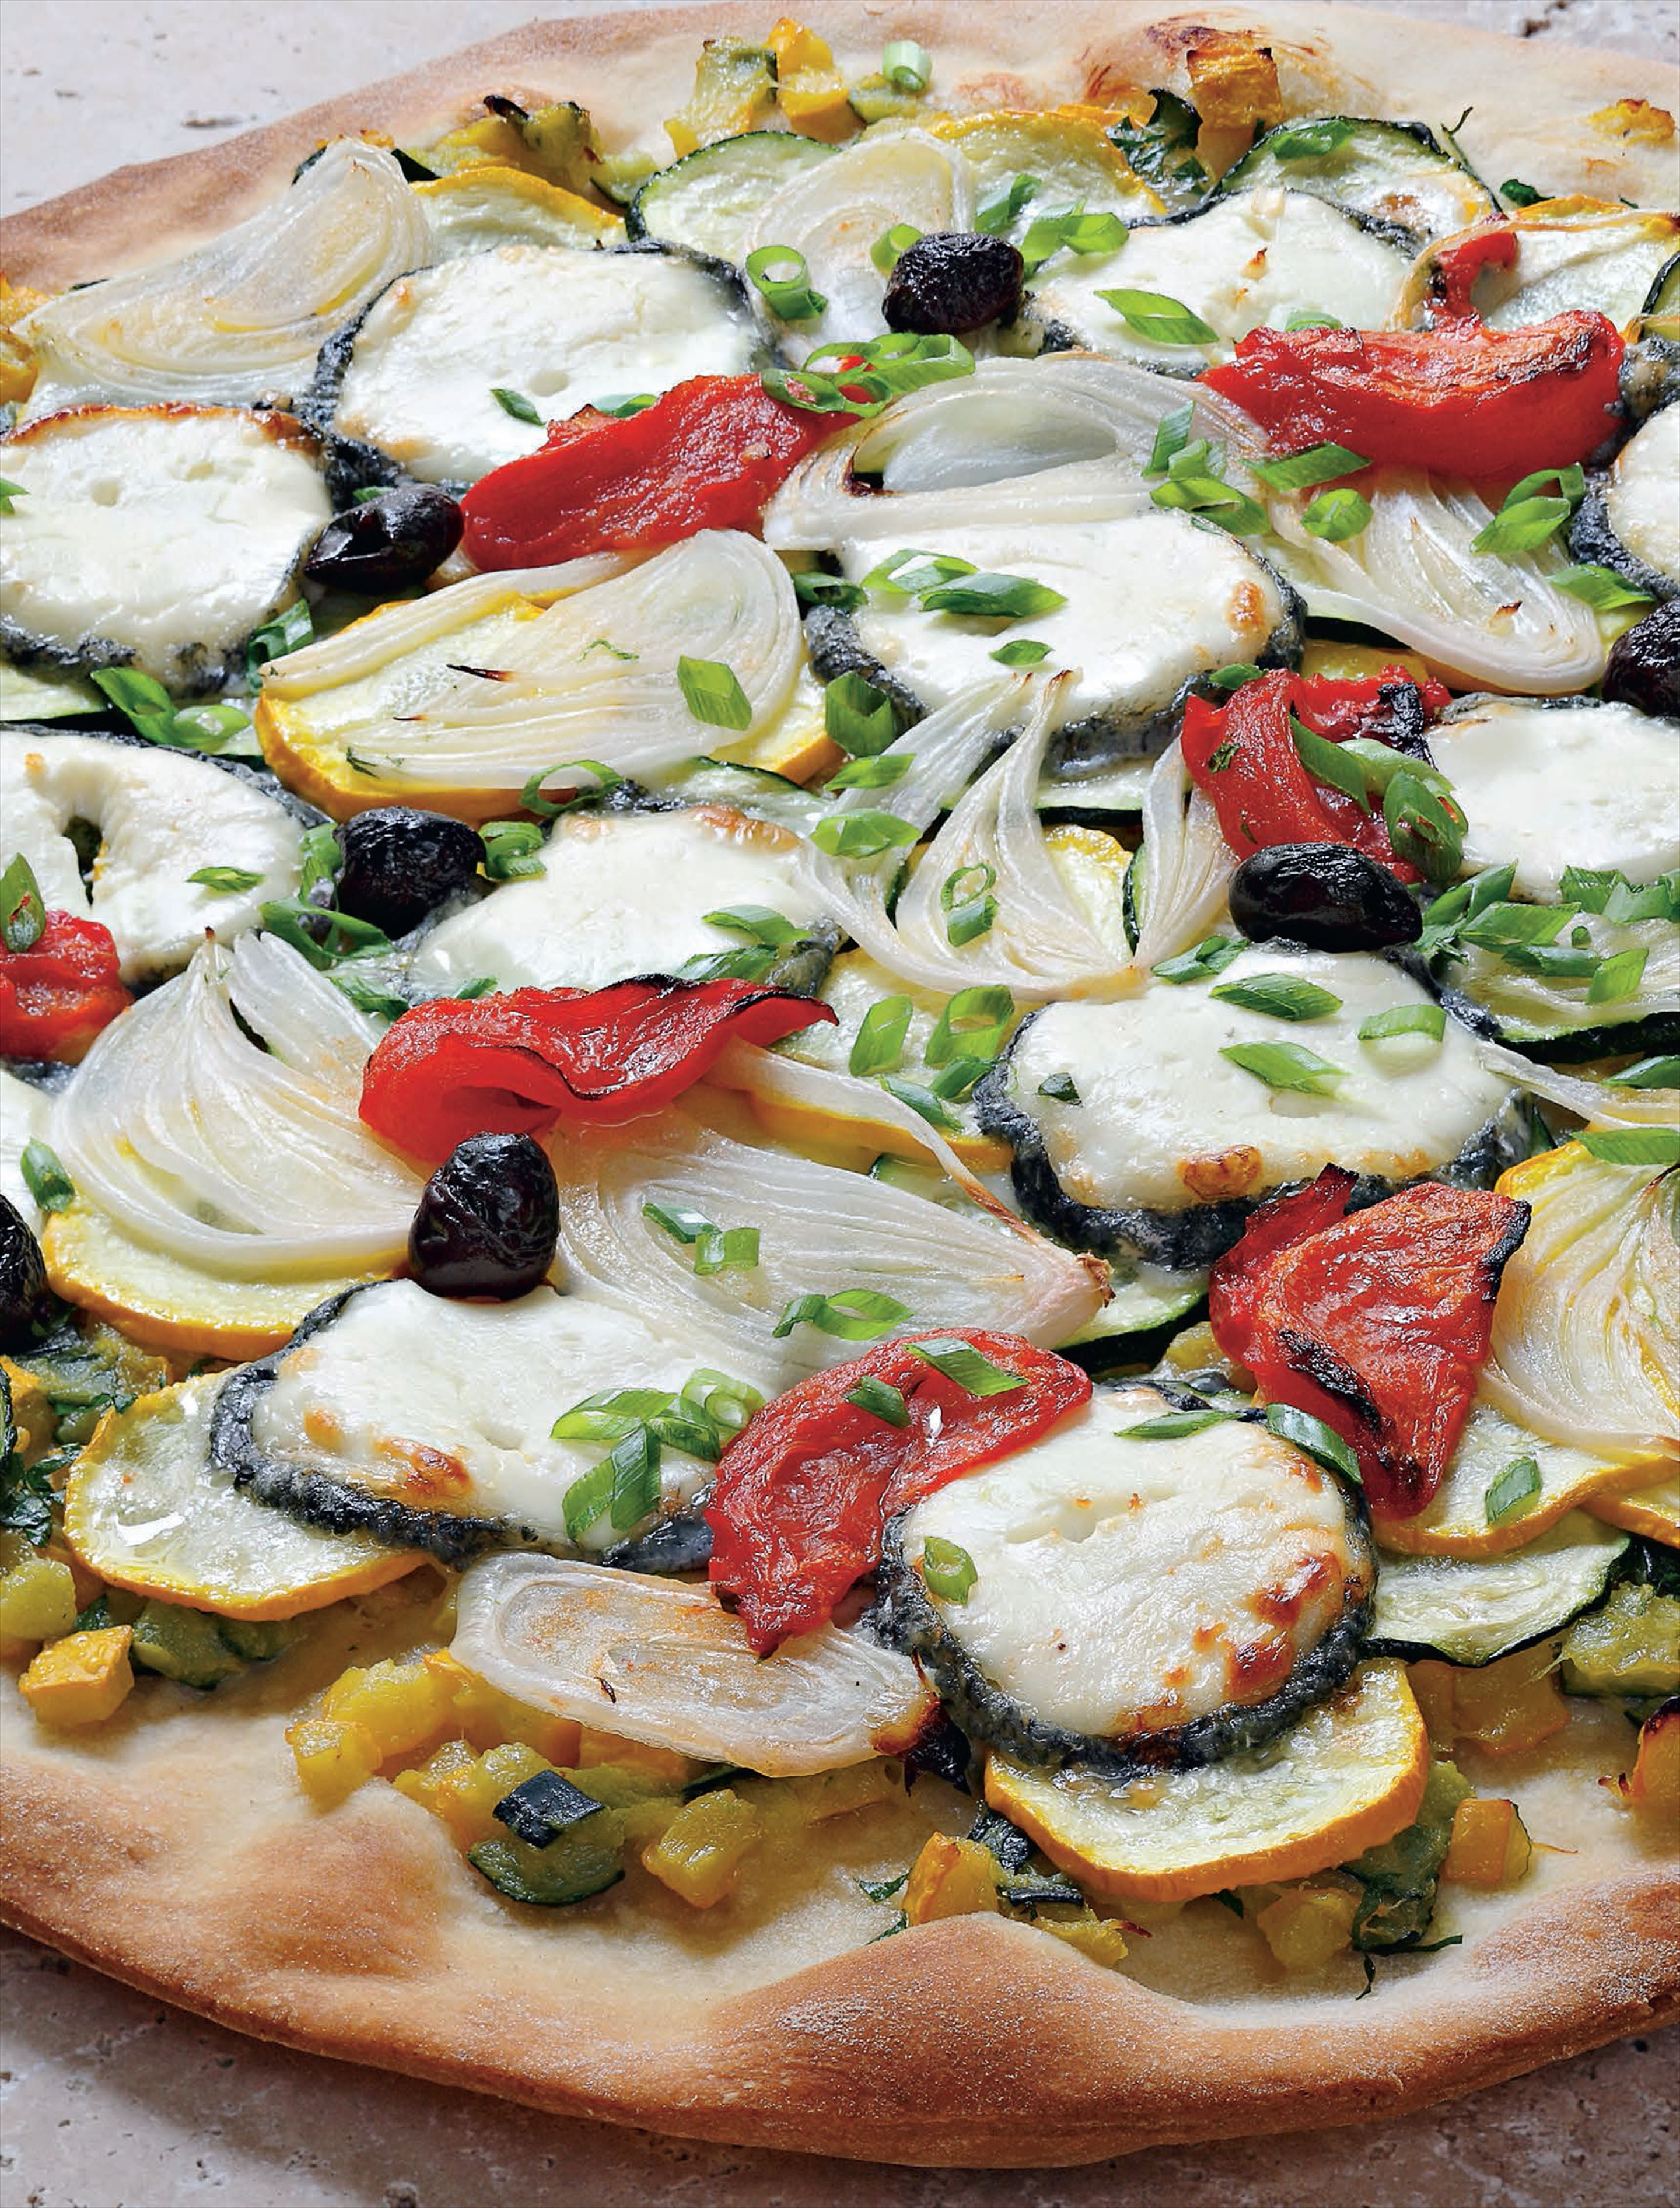 Courgette and sainte-maure pizza